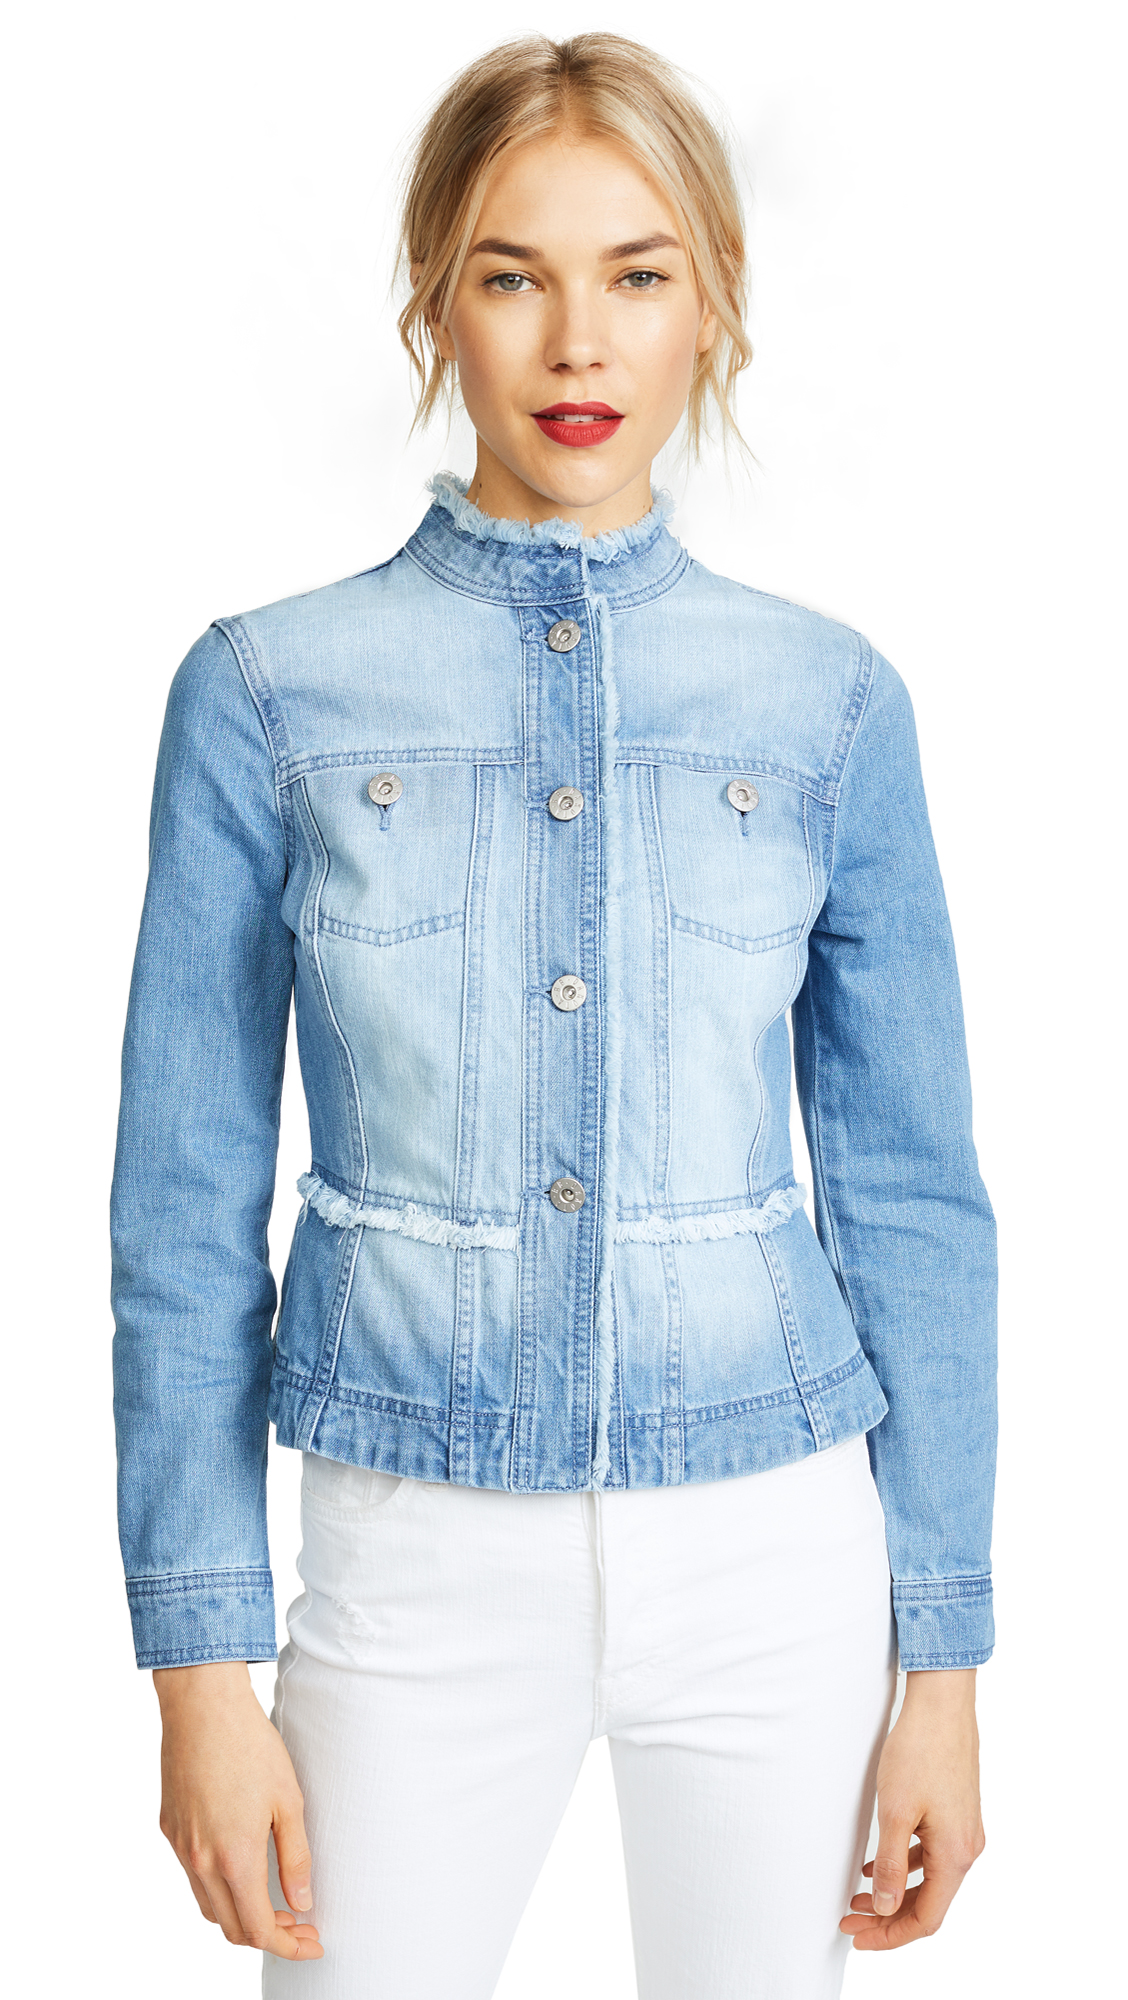 BB Dakota Coletta Denim Peplum Jacket In Light Blue